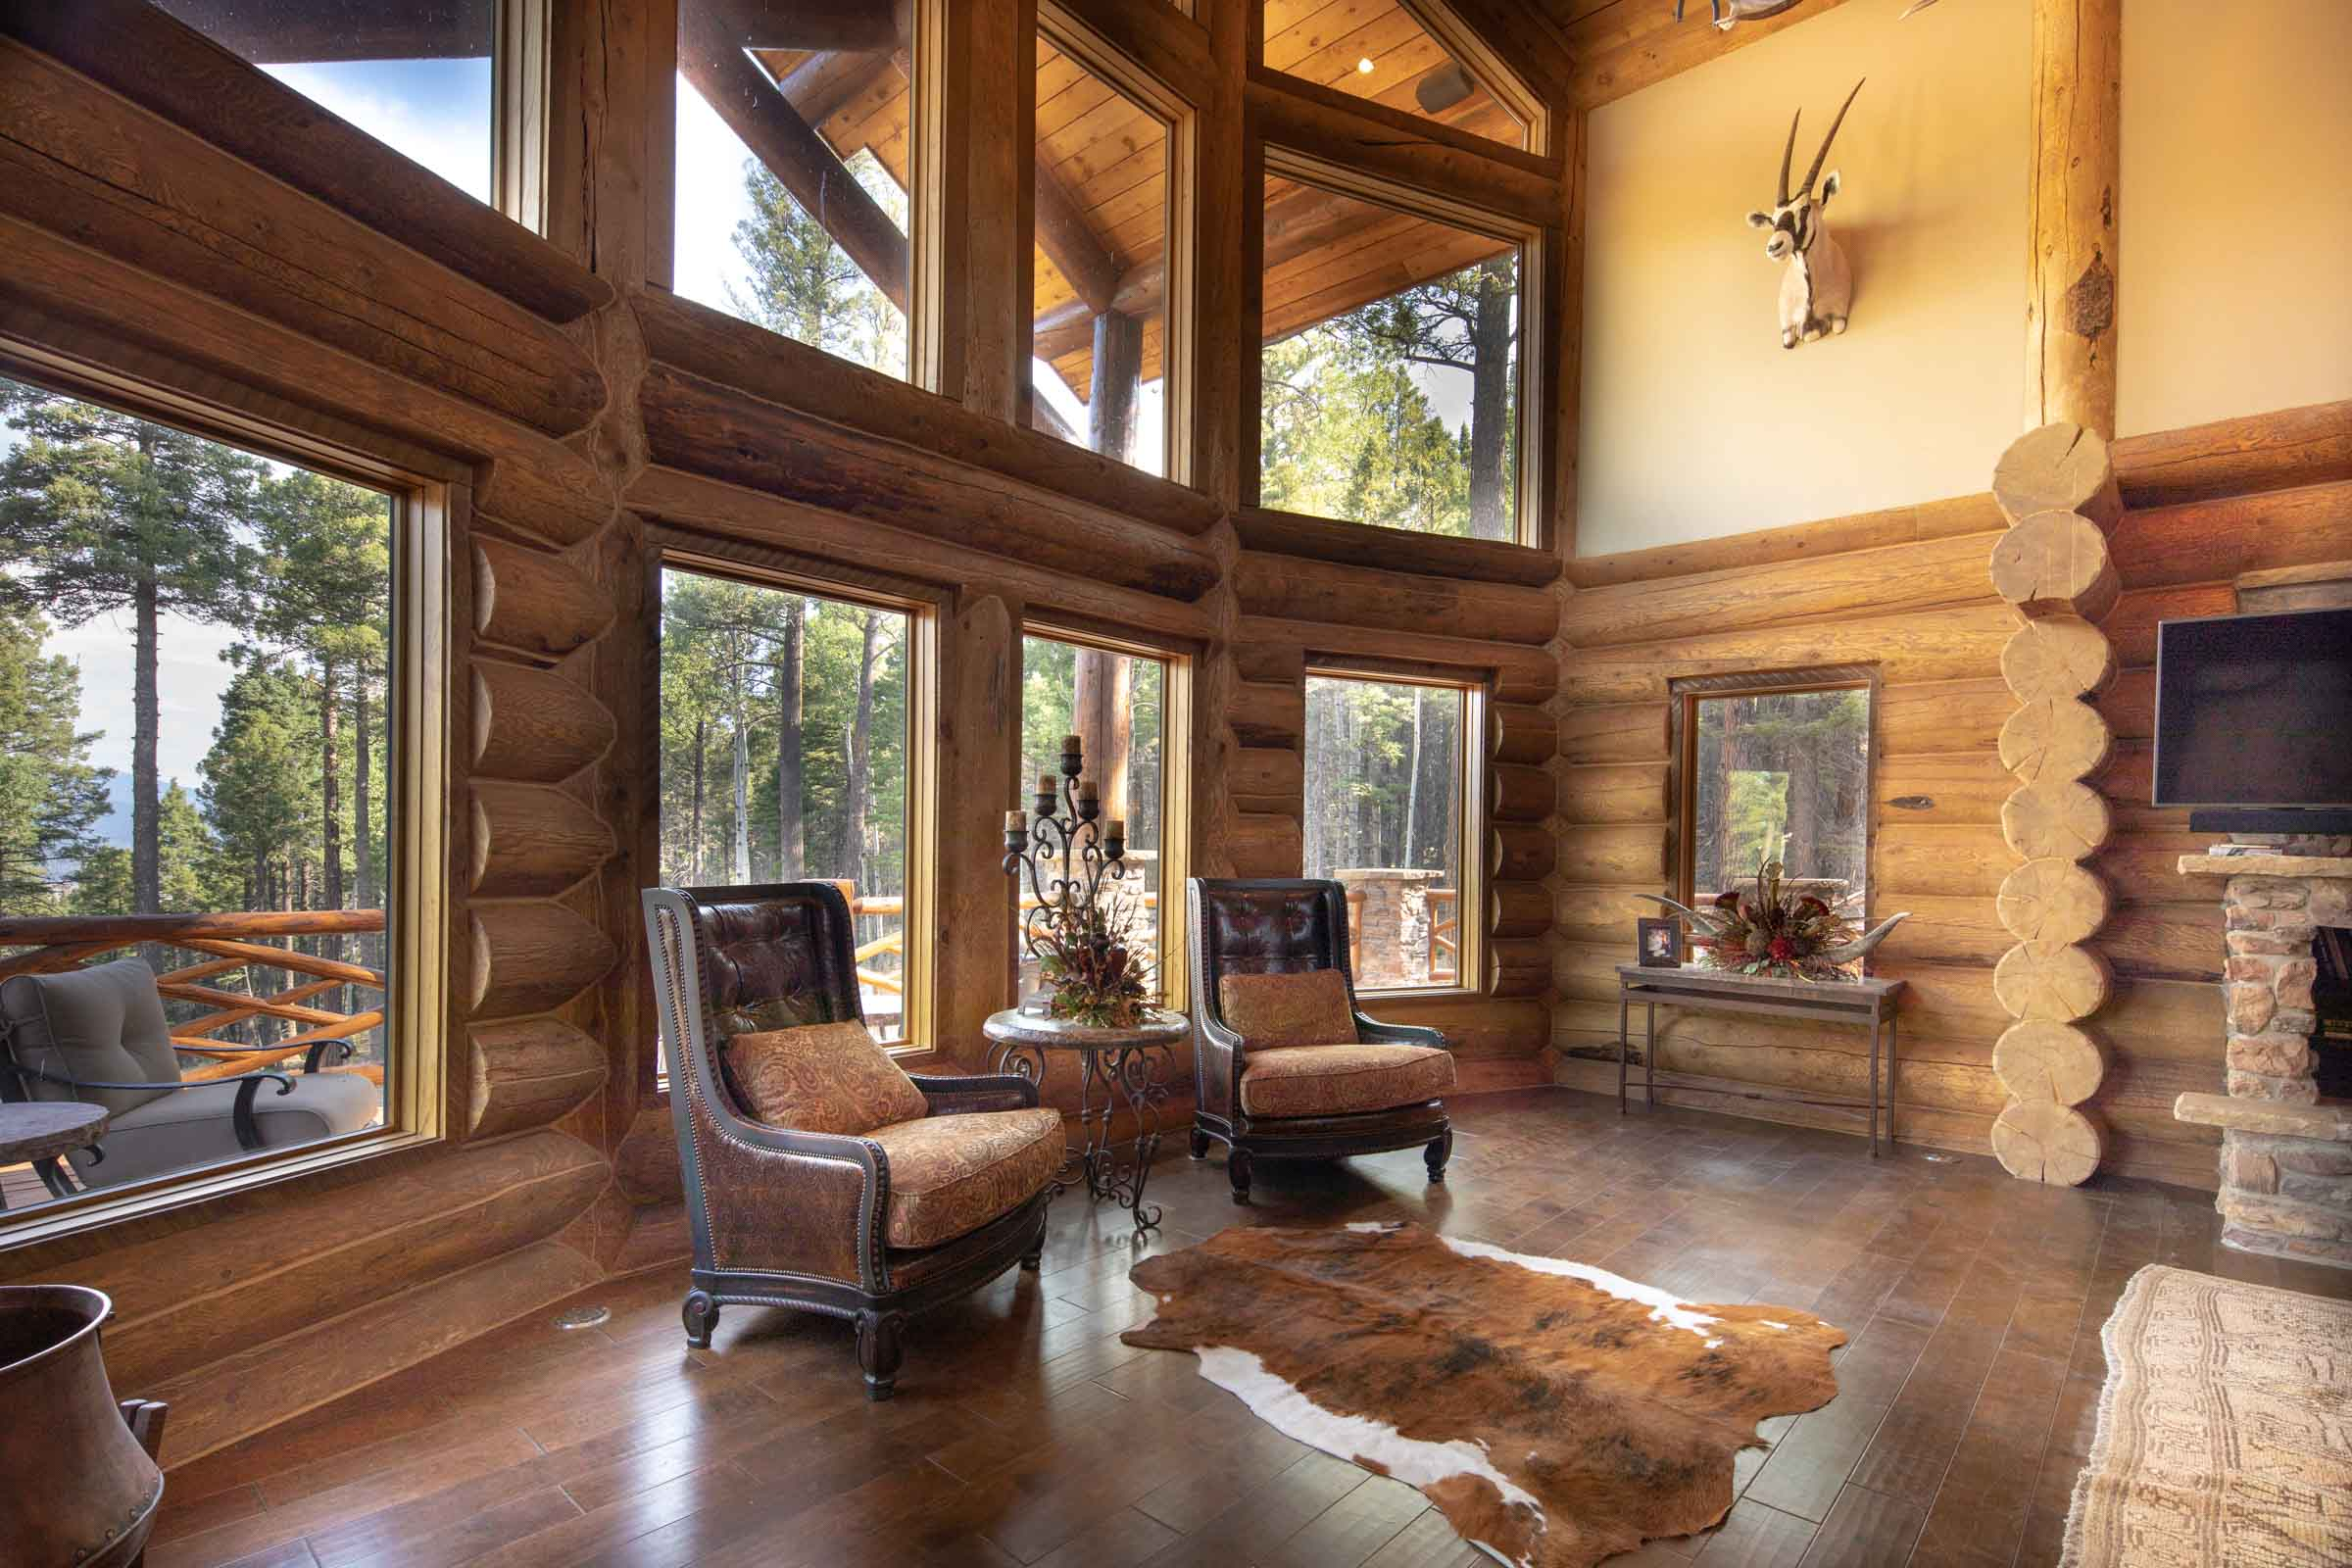 Luxury log cabin angel fire new mexico-31